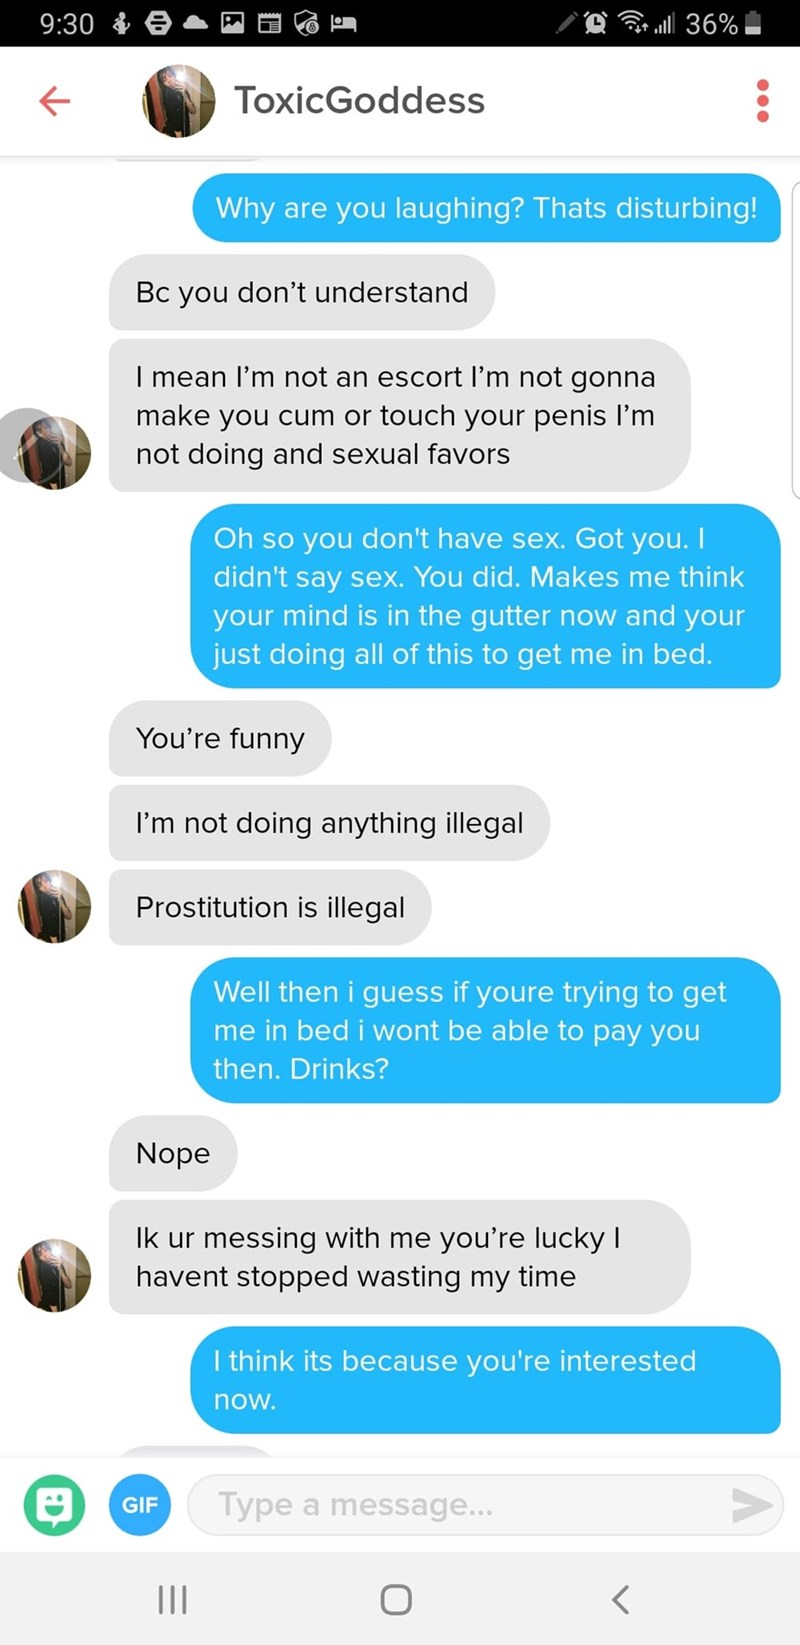 Text - . 36% 9:30 ToxicGoddess Why are you laughing? Thats disturbing! Bc you don't understand I mean l'm not an escort I'm not gonna make you cum or touch your penis l'm not doing and sexual favors Oh so you don't have sex. Got you. I didn't say sex. You did. Makes me think your mind is in the gutter now and your just doing all of this to get me in bed. You're funny I'm not doing anything illegal Prostitution is illegal Well then i guess if youre trying to get me in bed i wont be able to pay yo